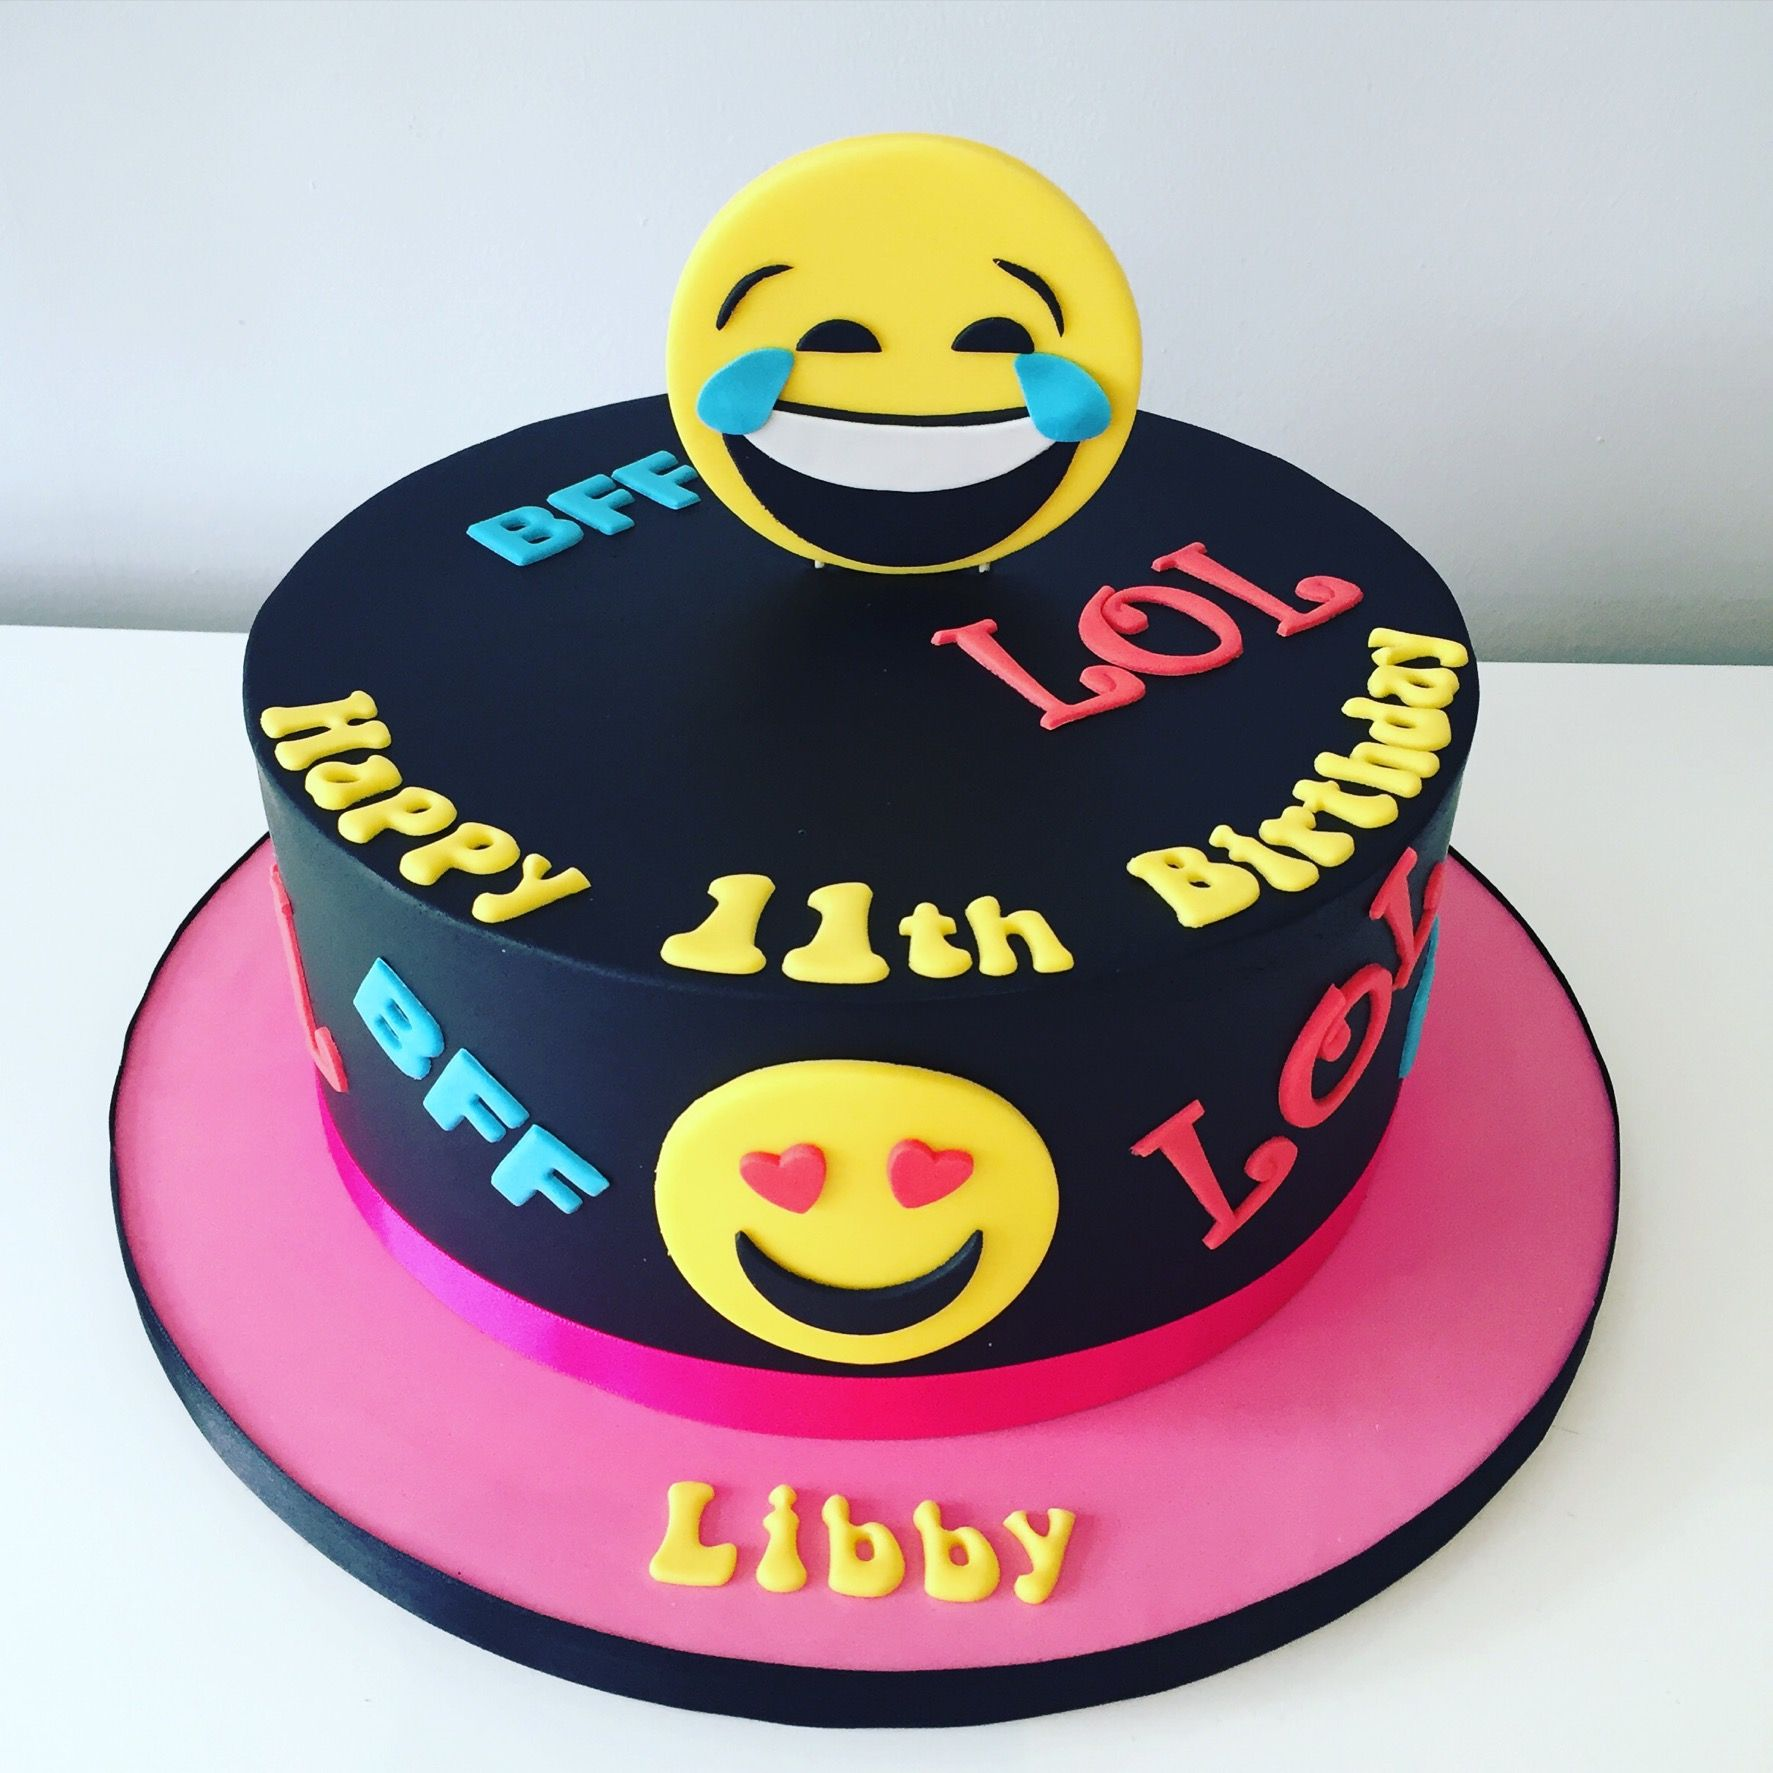 Sunglasses Emoji Cake Emoji Birthday Cake My Cakes Pinterest - 11th birthday cake ideas